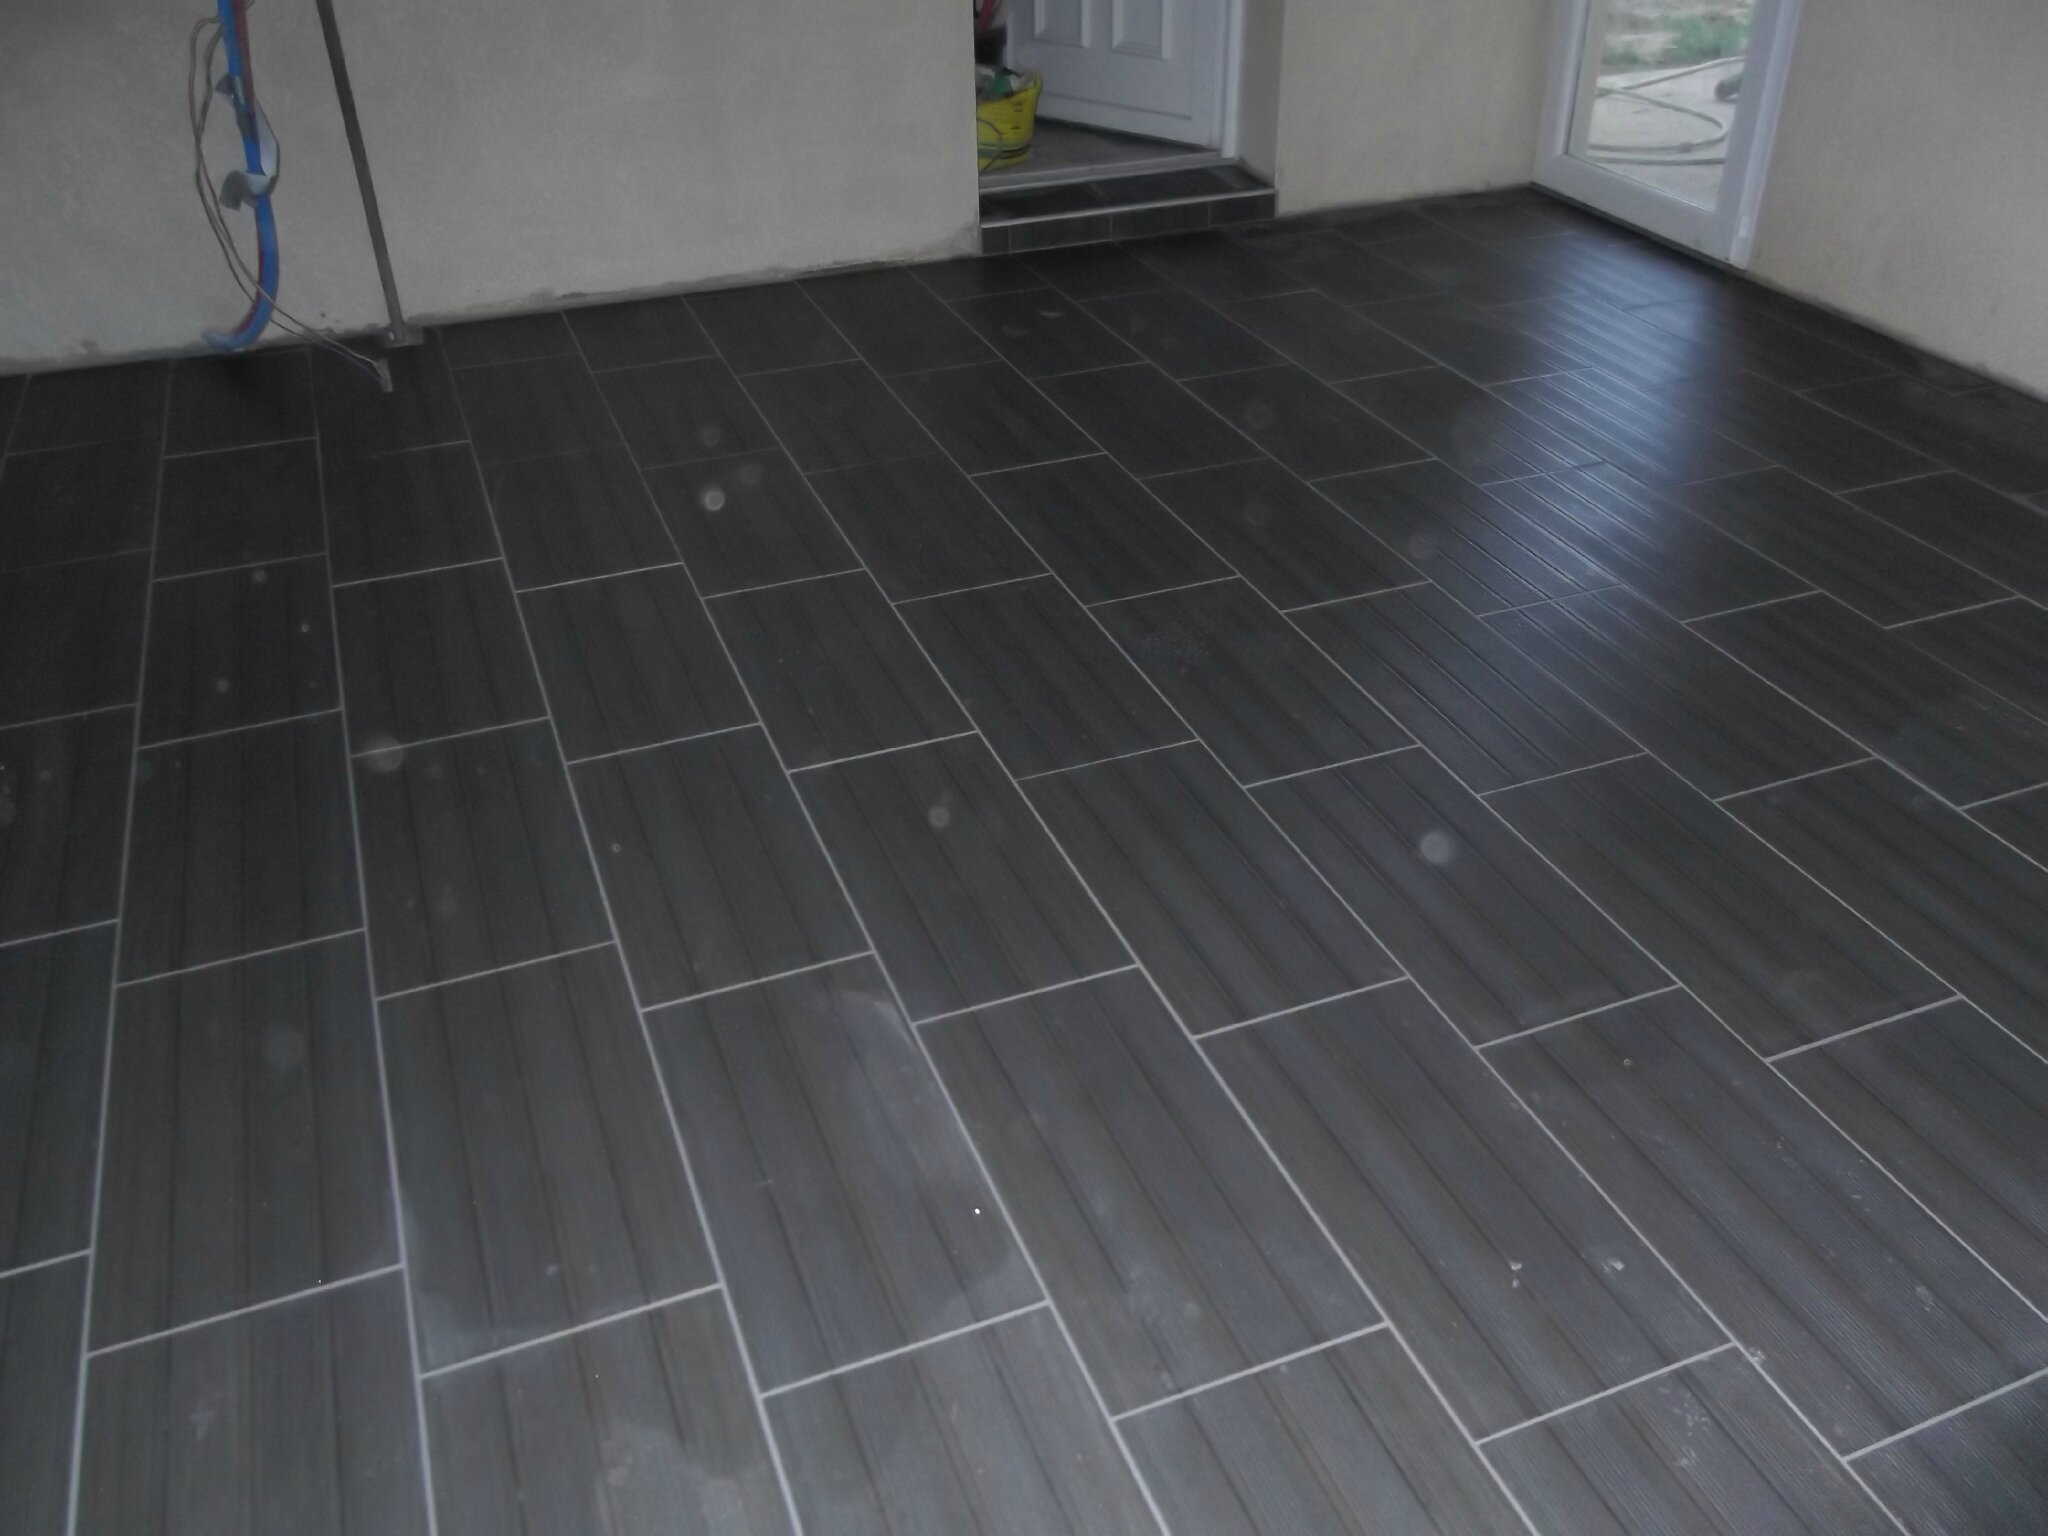 Couleur salon carrelage gris travaux renovation orleans for Prix carrelage pose m2